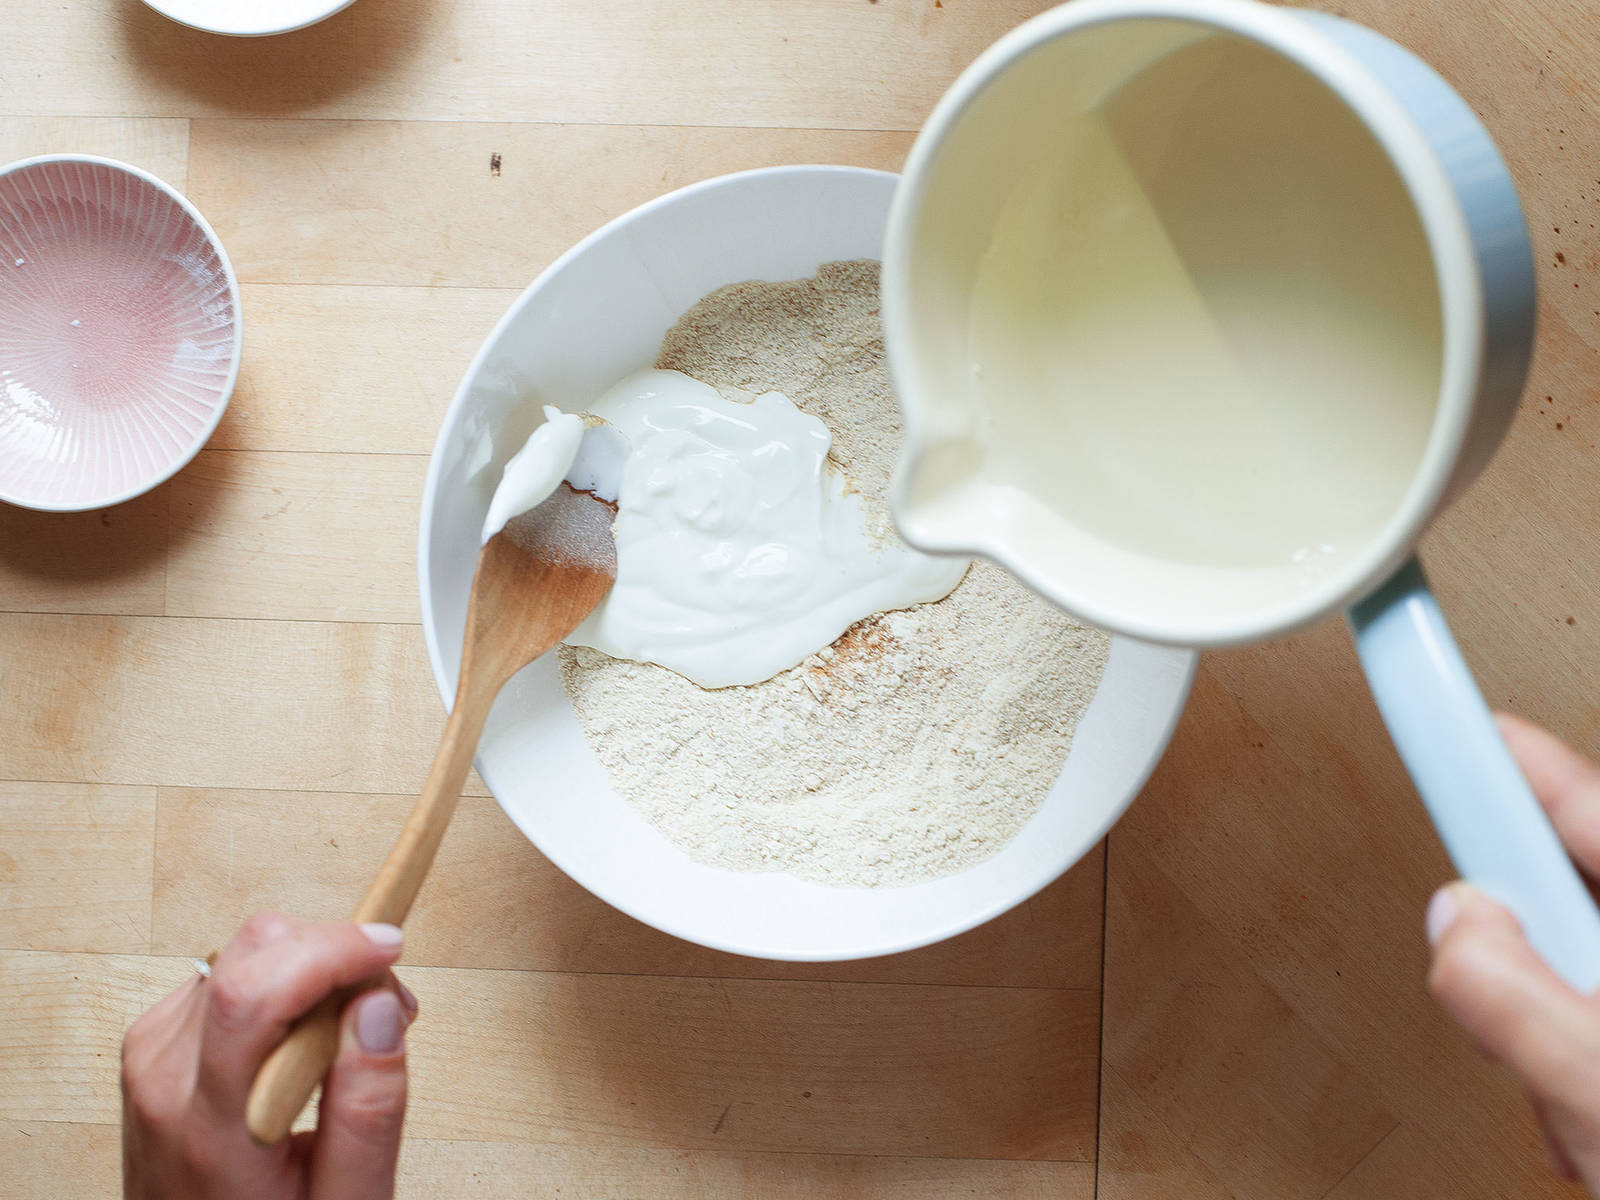 In a large bowl, mix einkorn wheat, baking powder, coconut sugar, and salt. Stir in yogurt and coconut oil and work into a smooth dough with your hands.